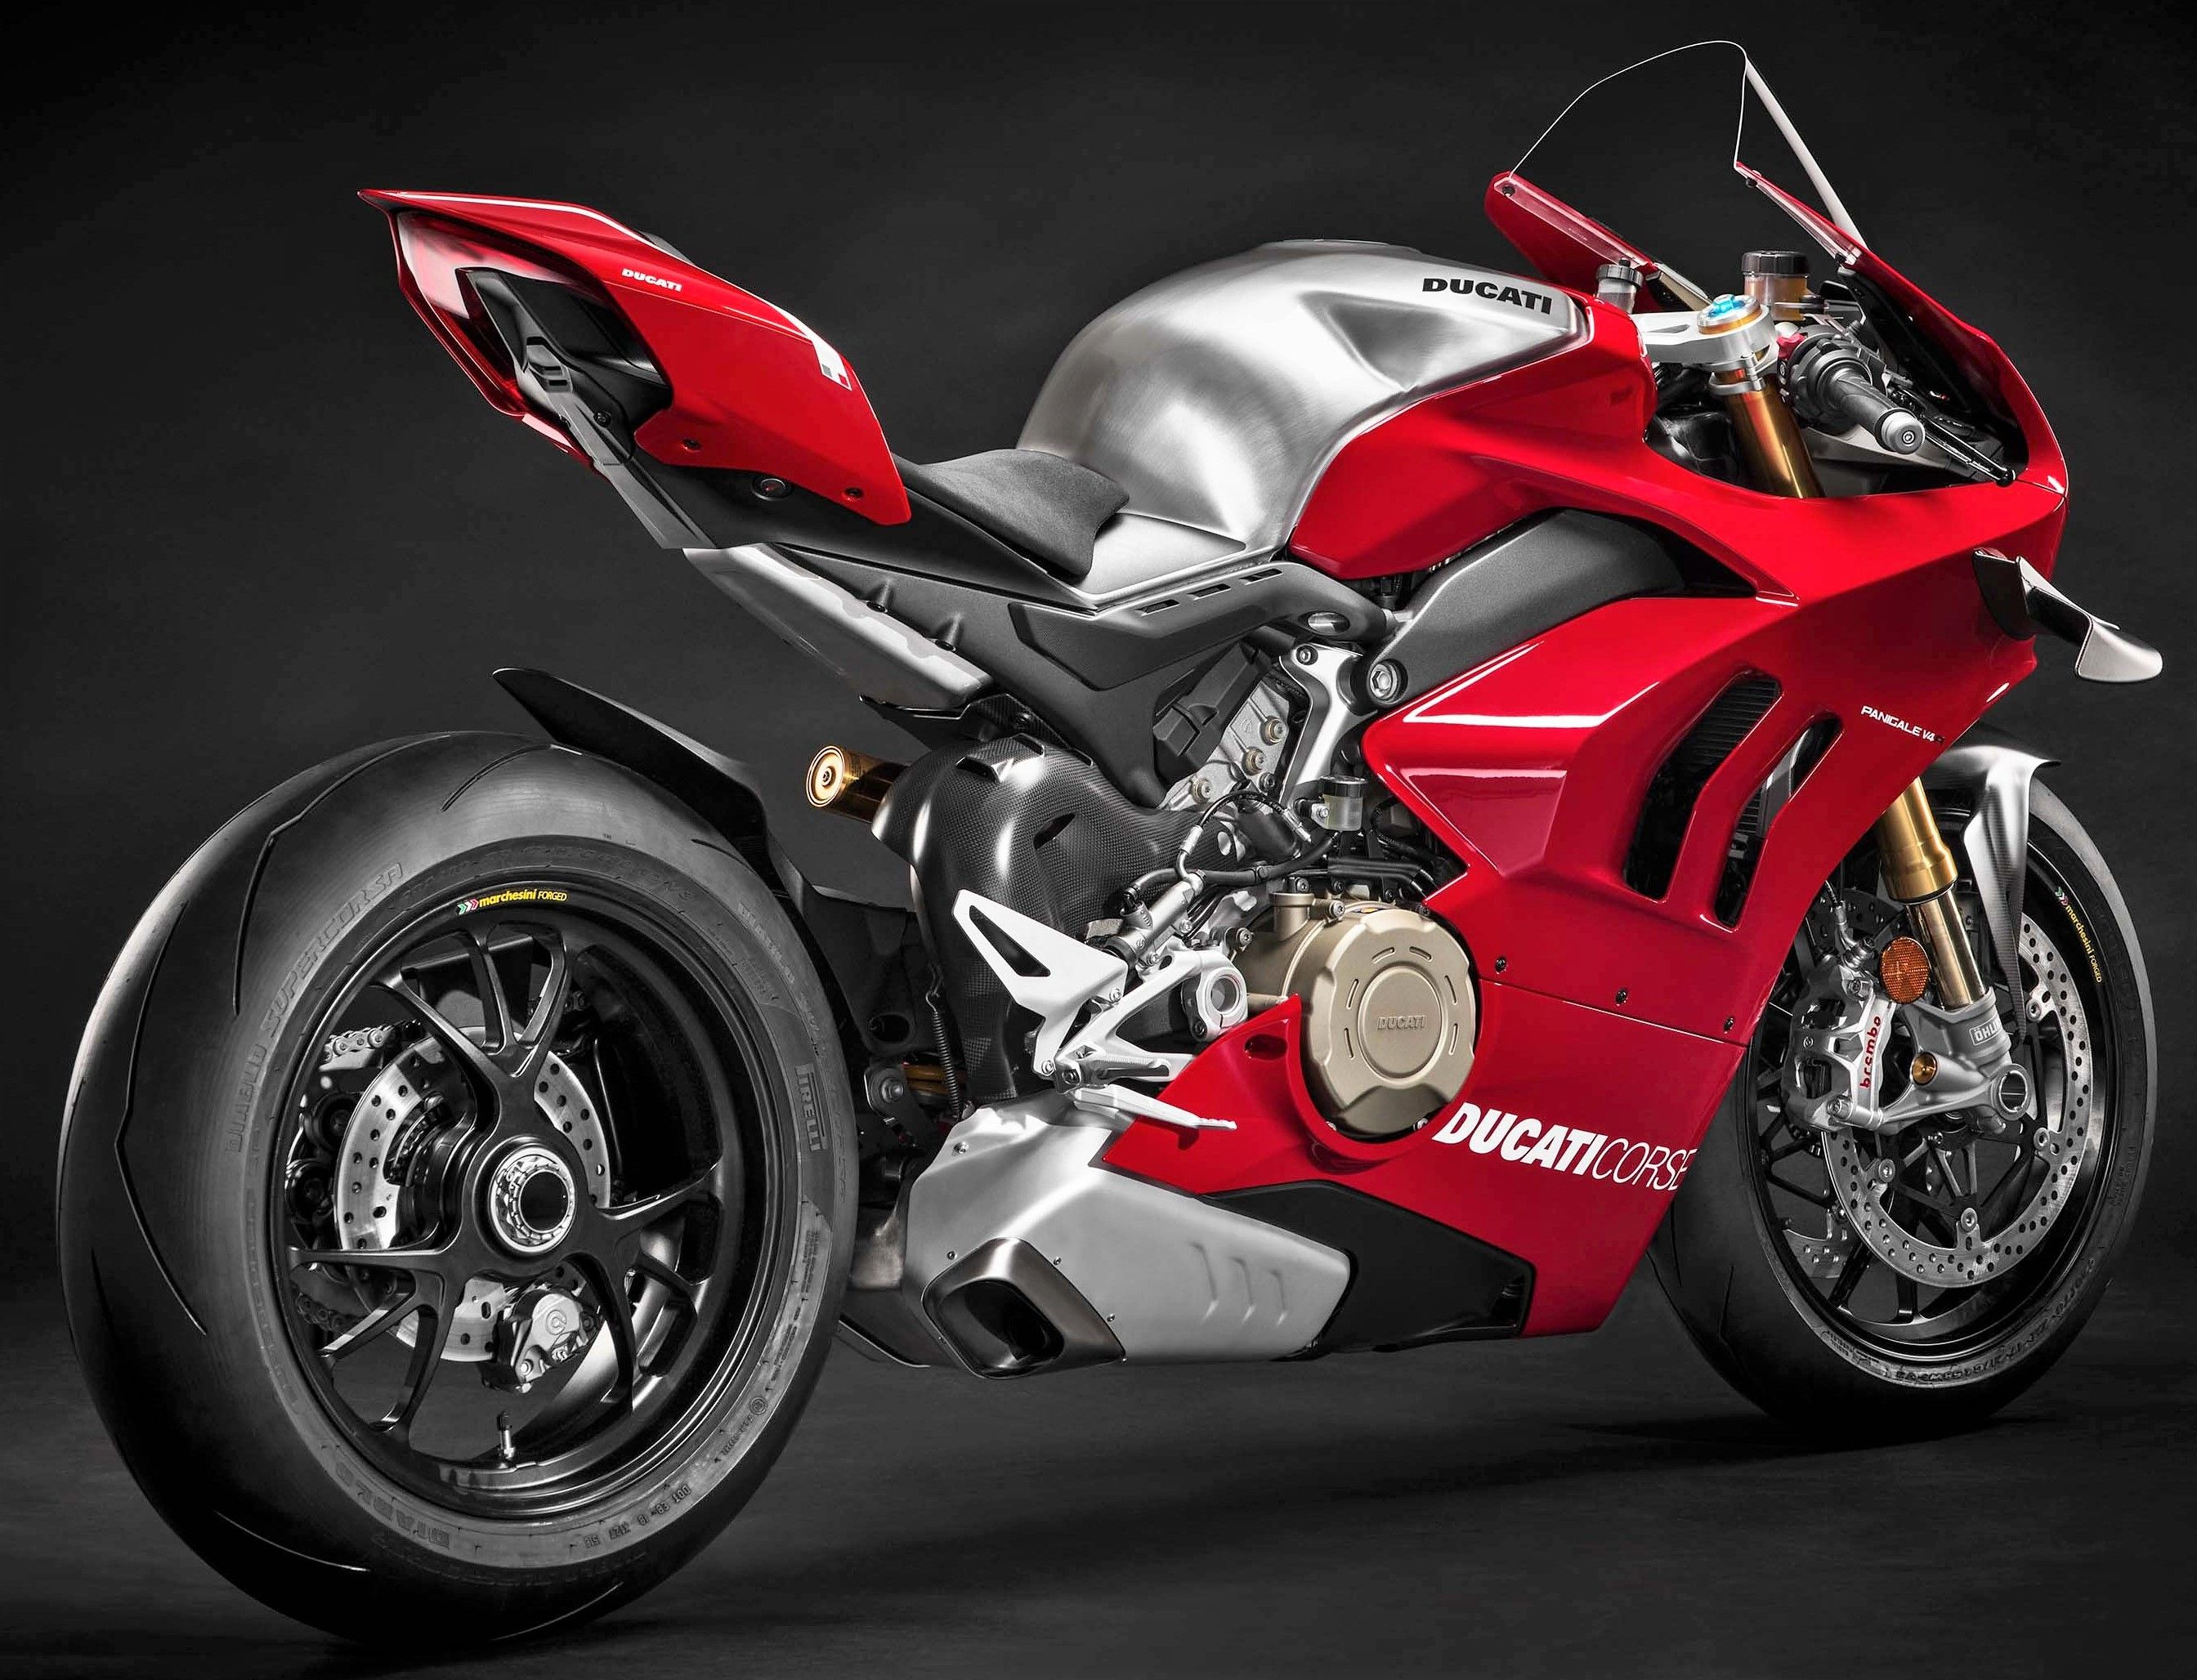 Ducati Panigale V4 R Officially Launches In India